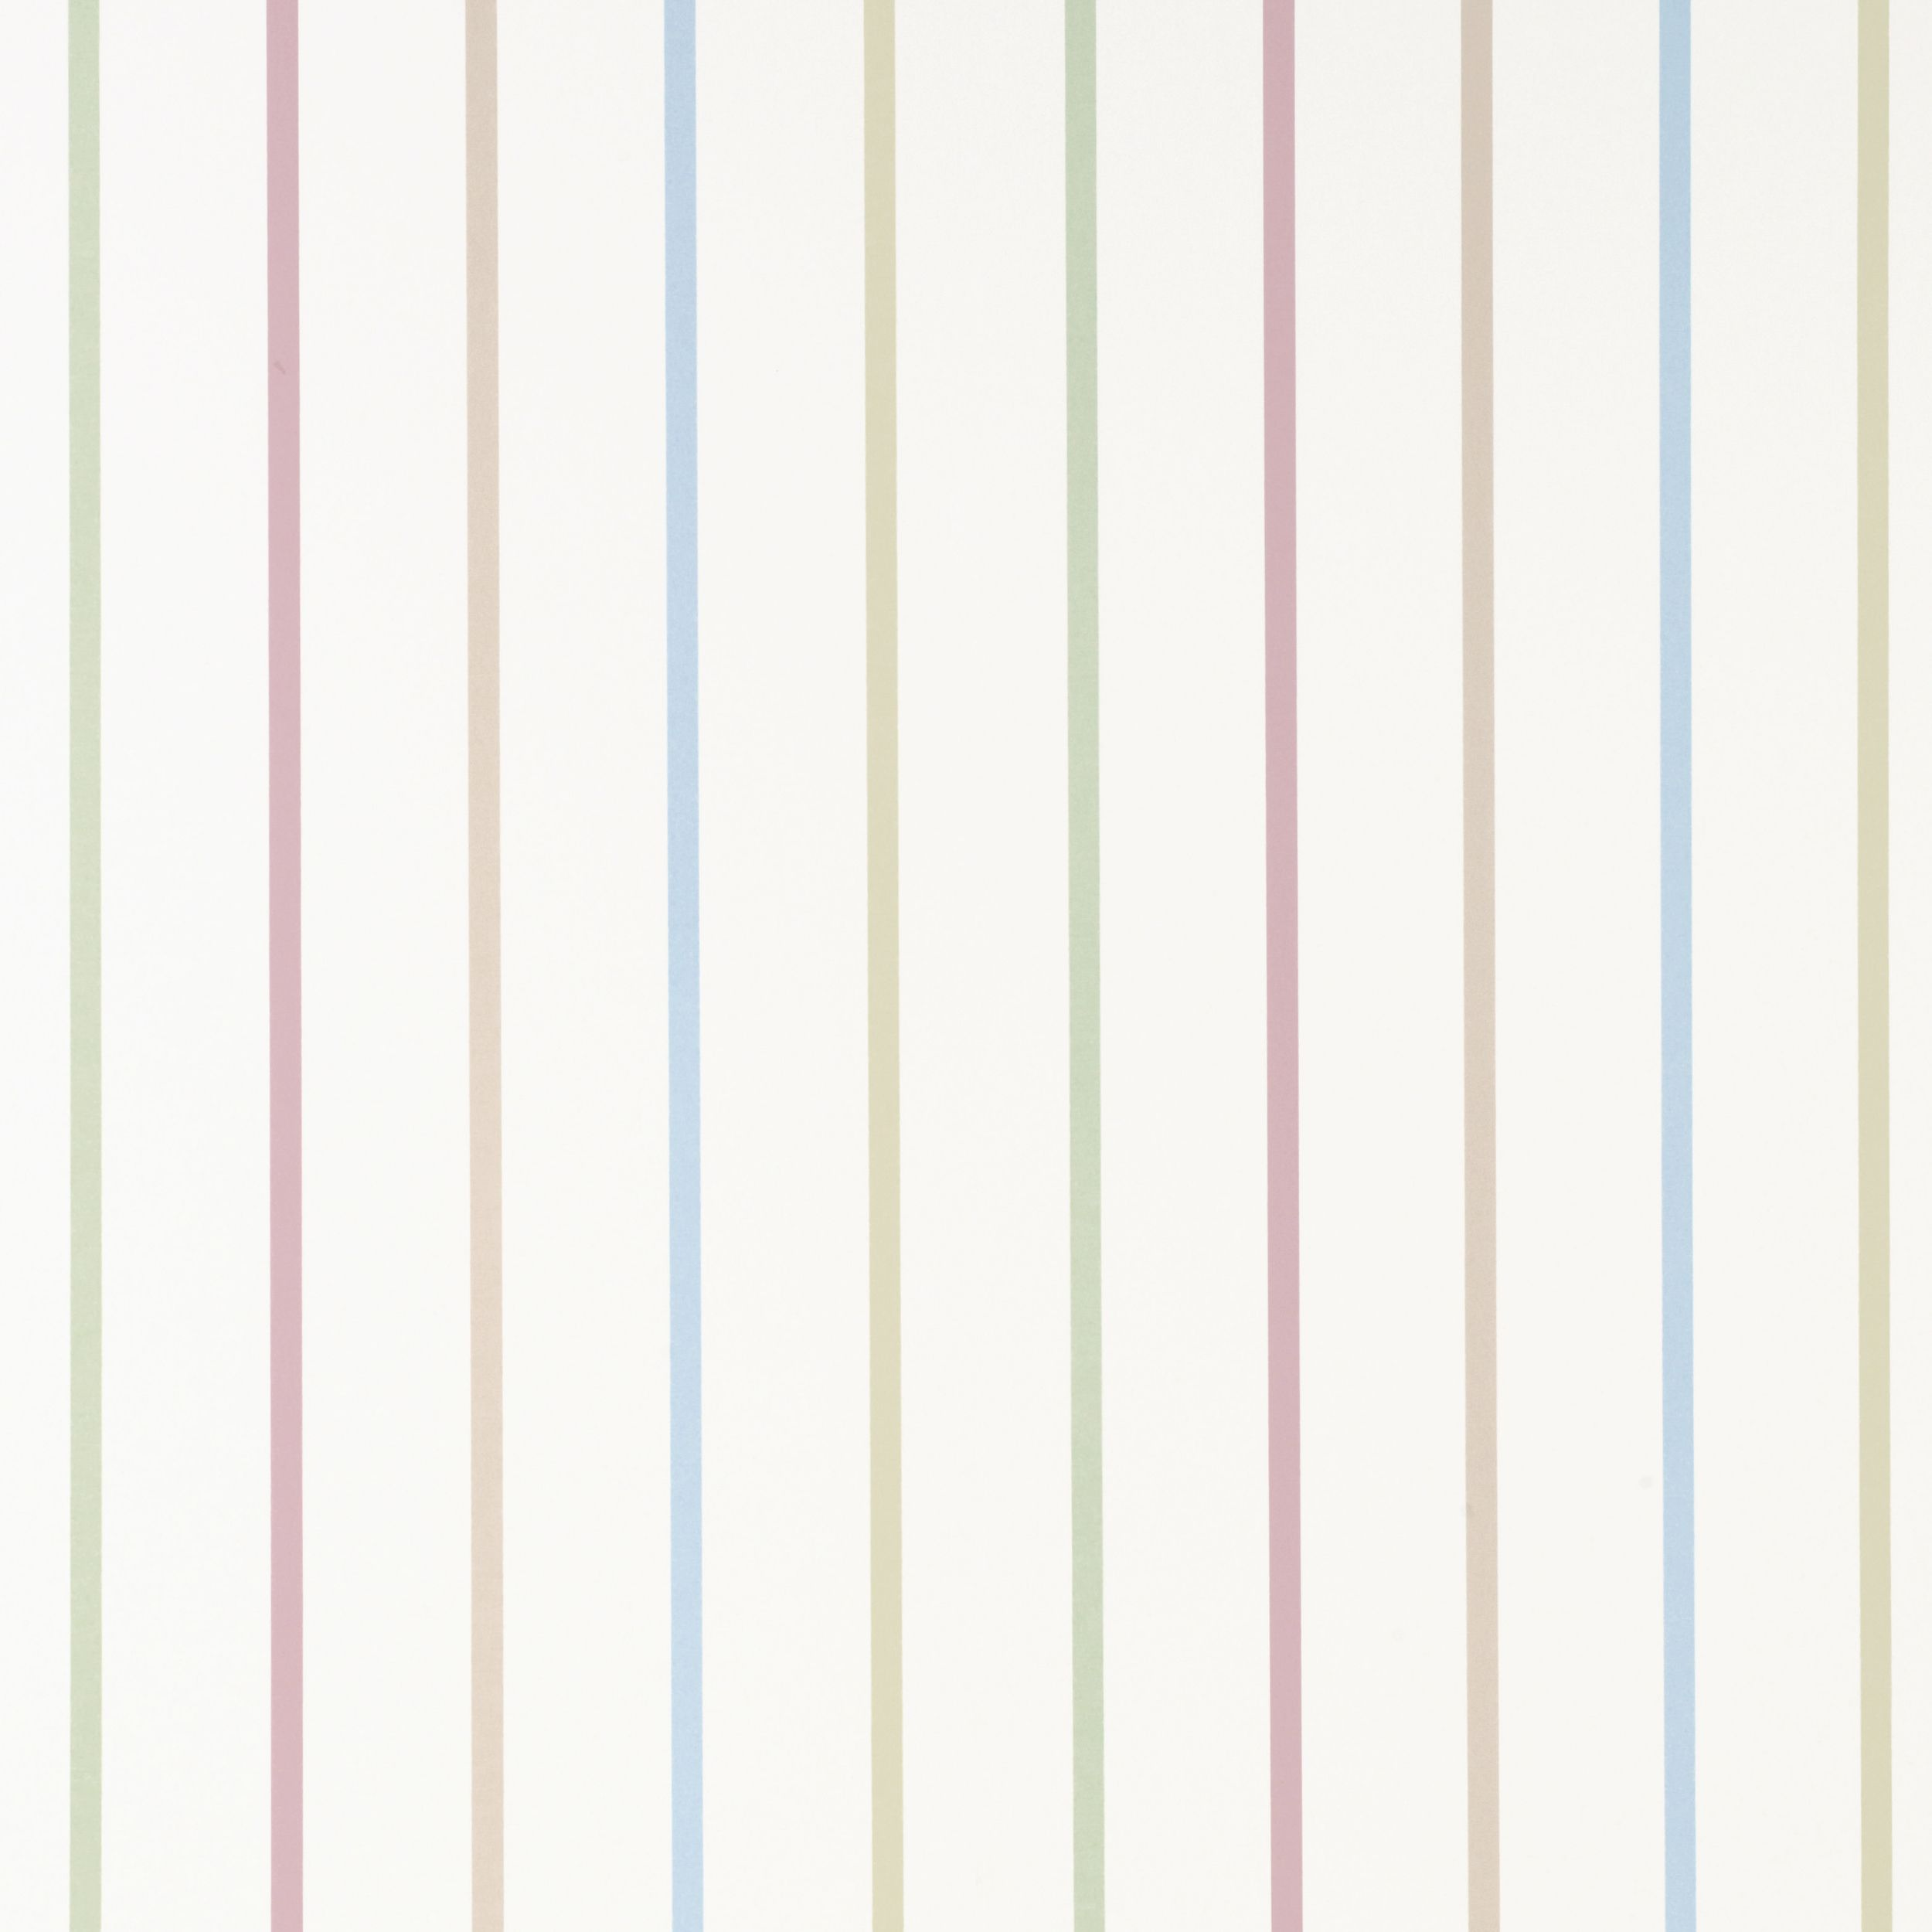 Draycott Multi Yellow Striped Childrens Wallpaper Playroom Wallpaper Striped Nursery Striped Wallpaper